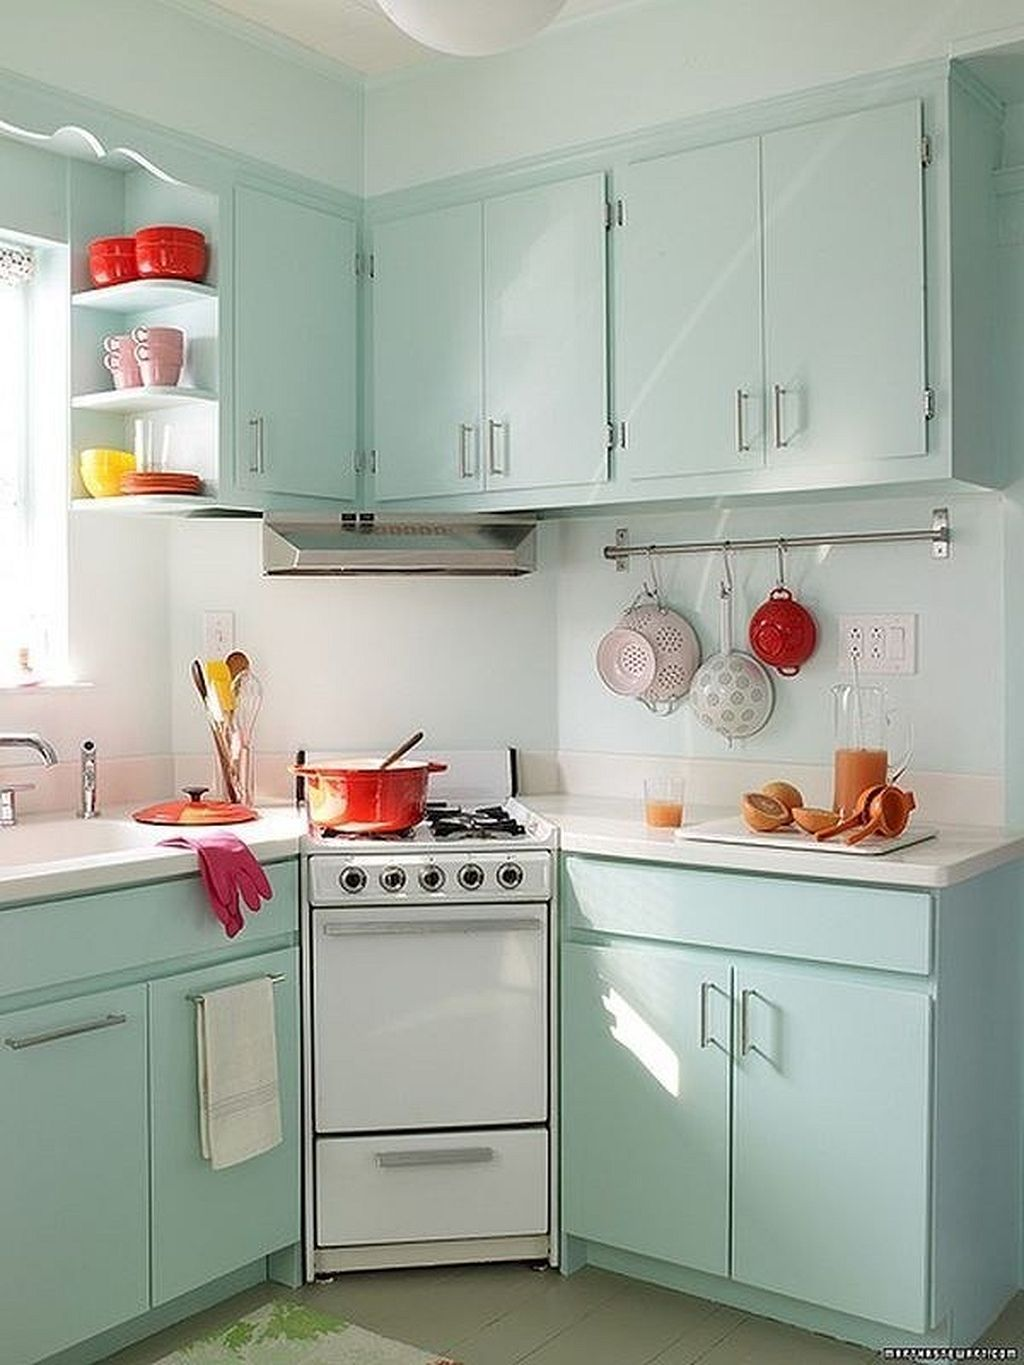 5 pinterest tricks that make decorating any small space easy home kitchens interior design on e kitchen ideas id=62104